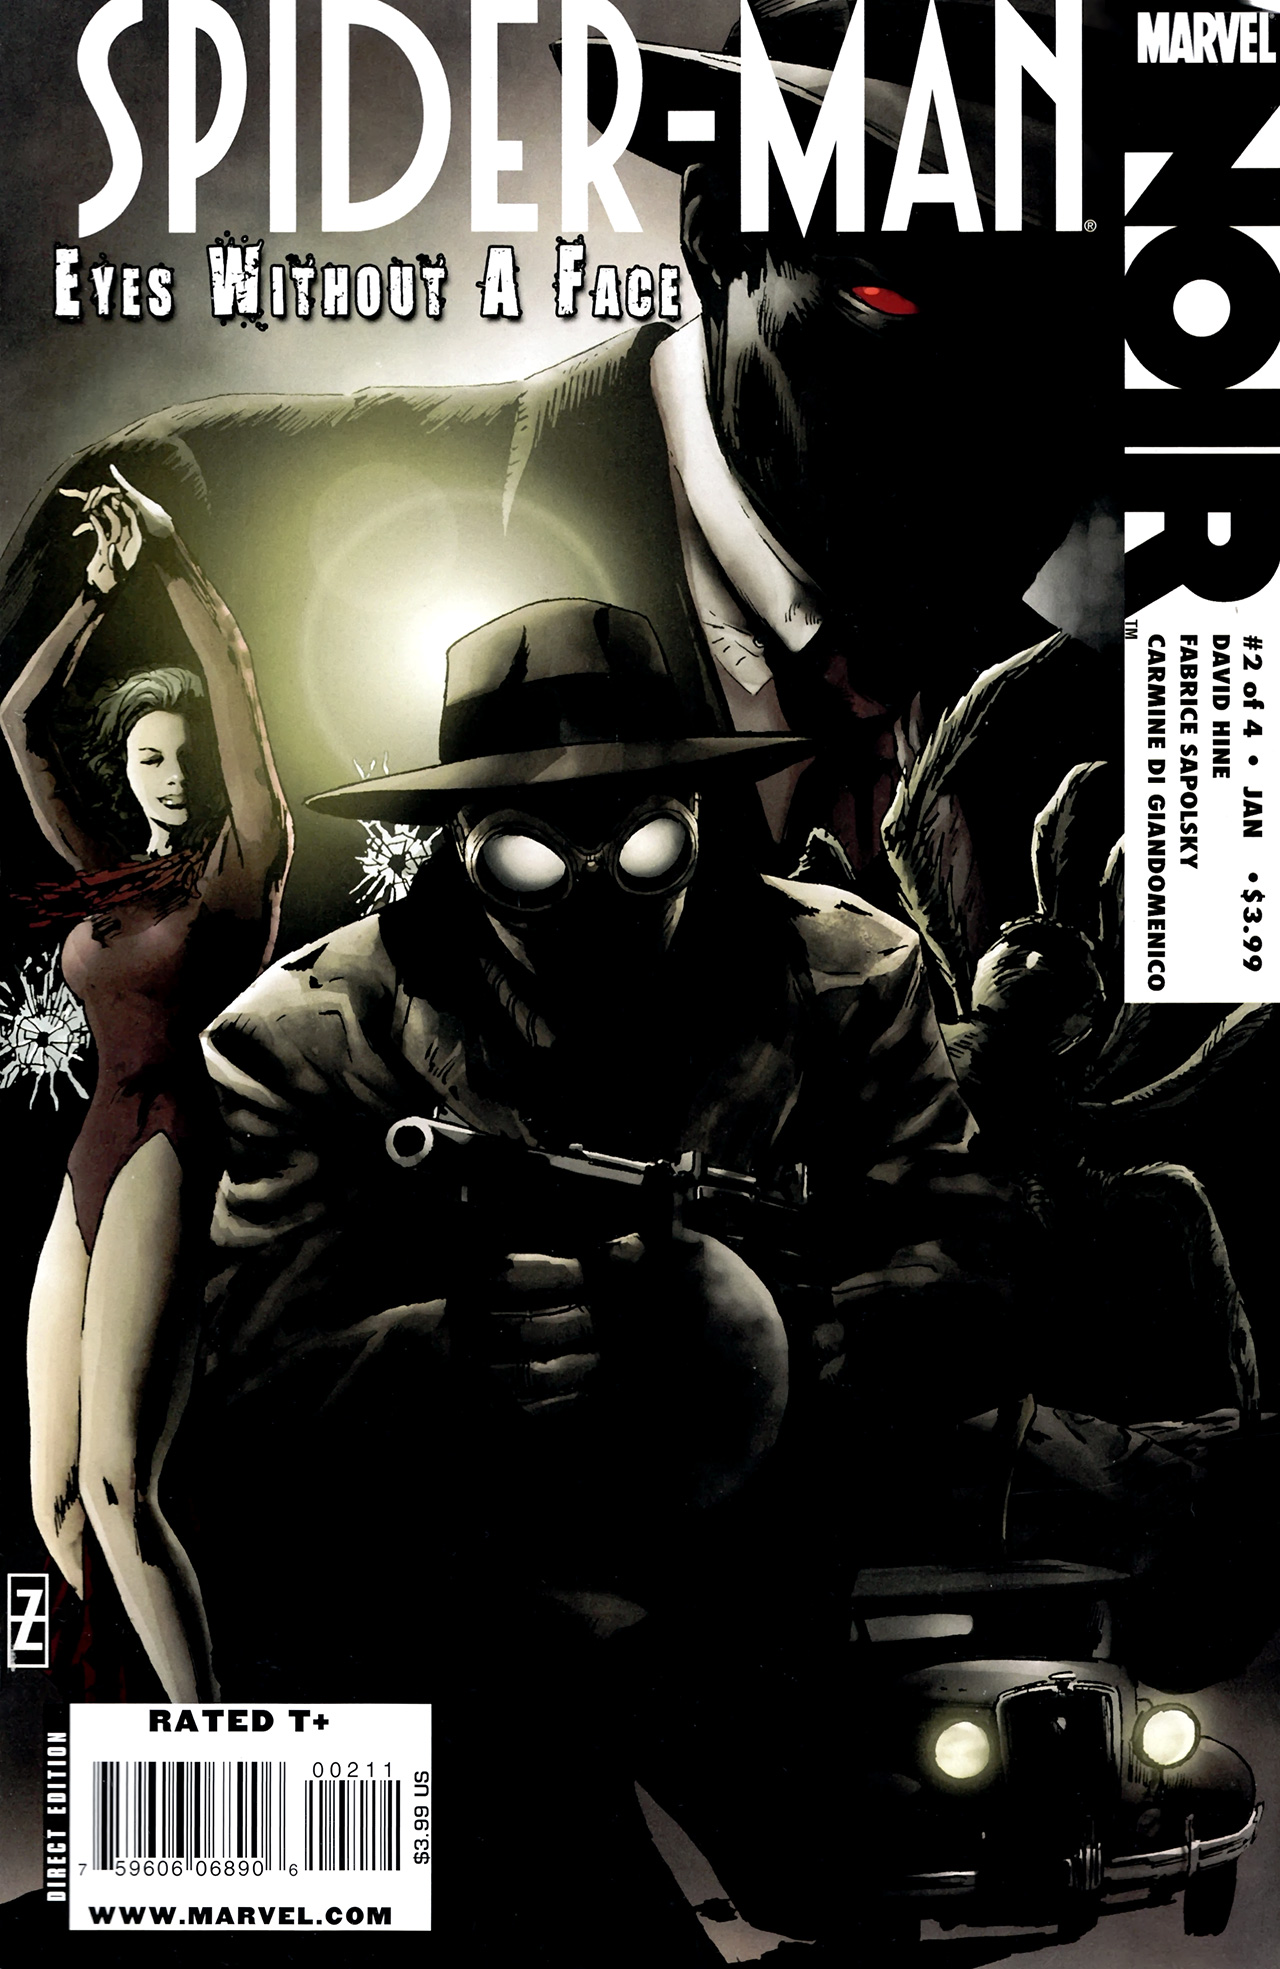 Spider-Man Noir Eyes Without A Face Vol 1 2.jpg